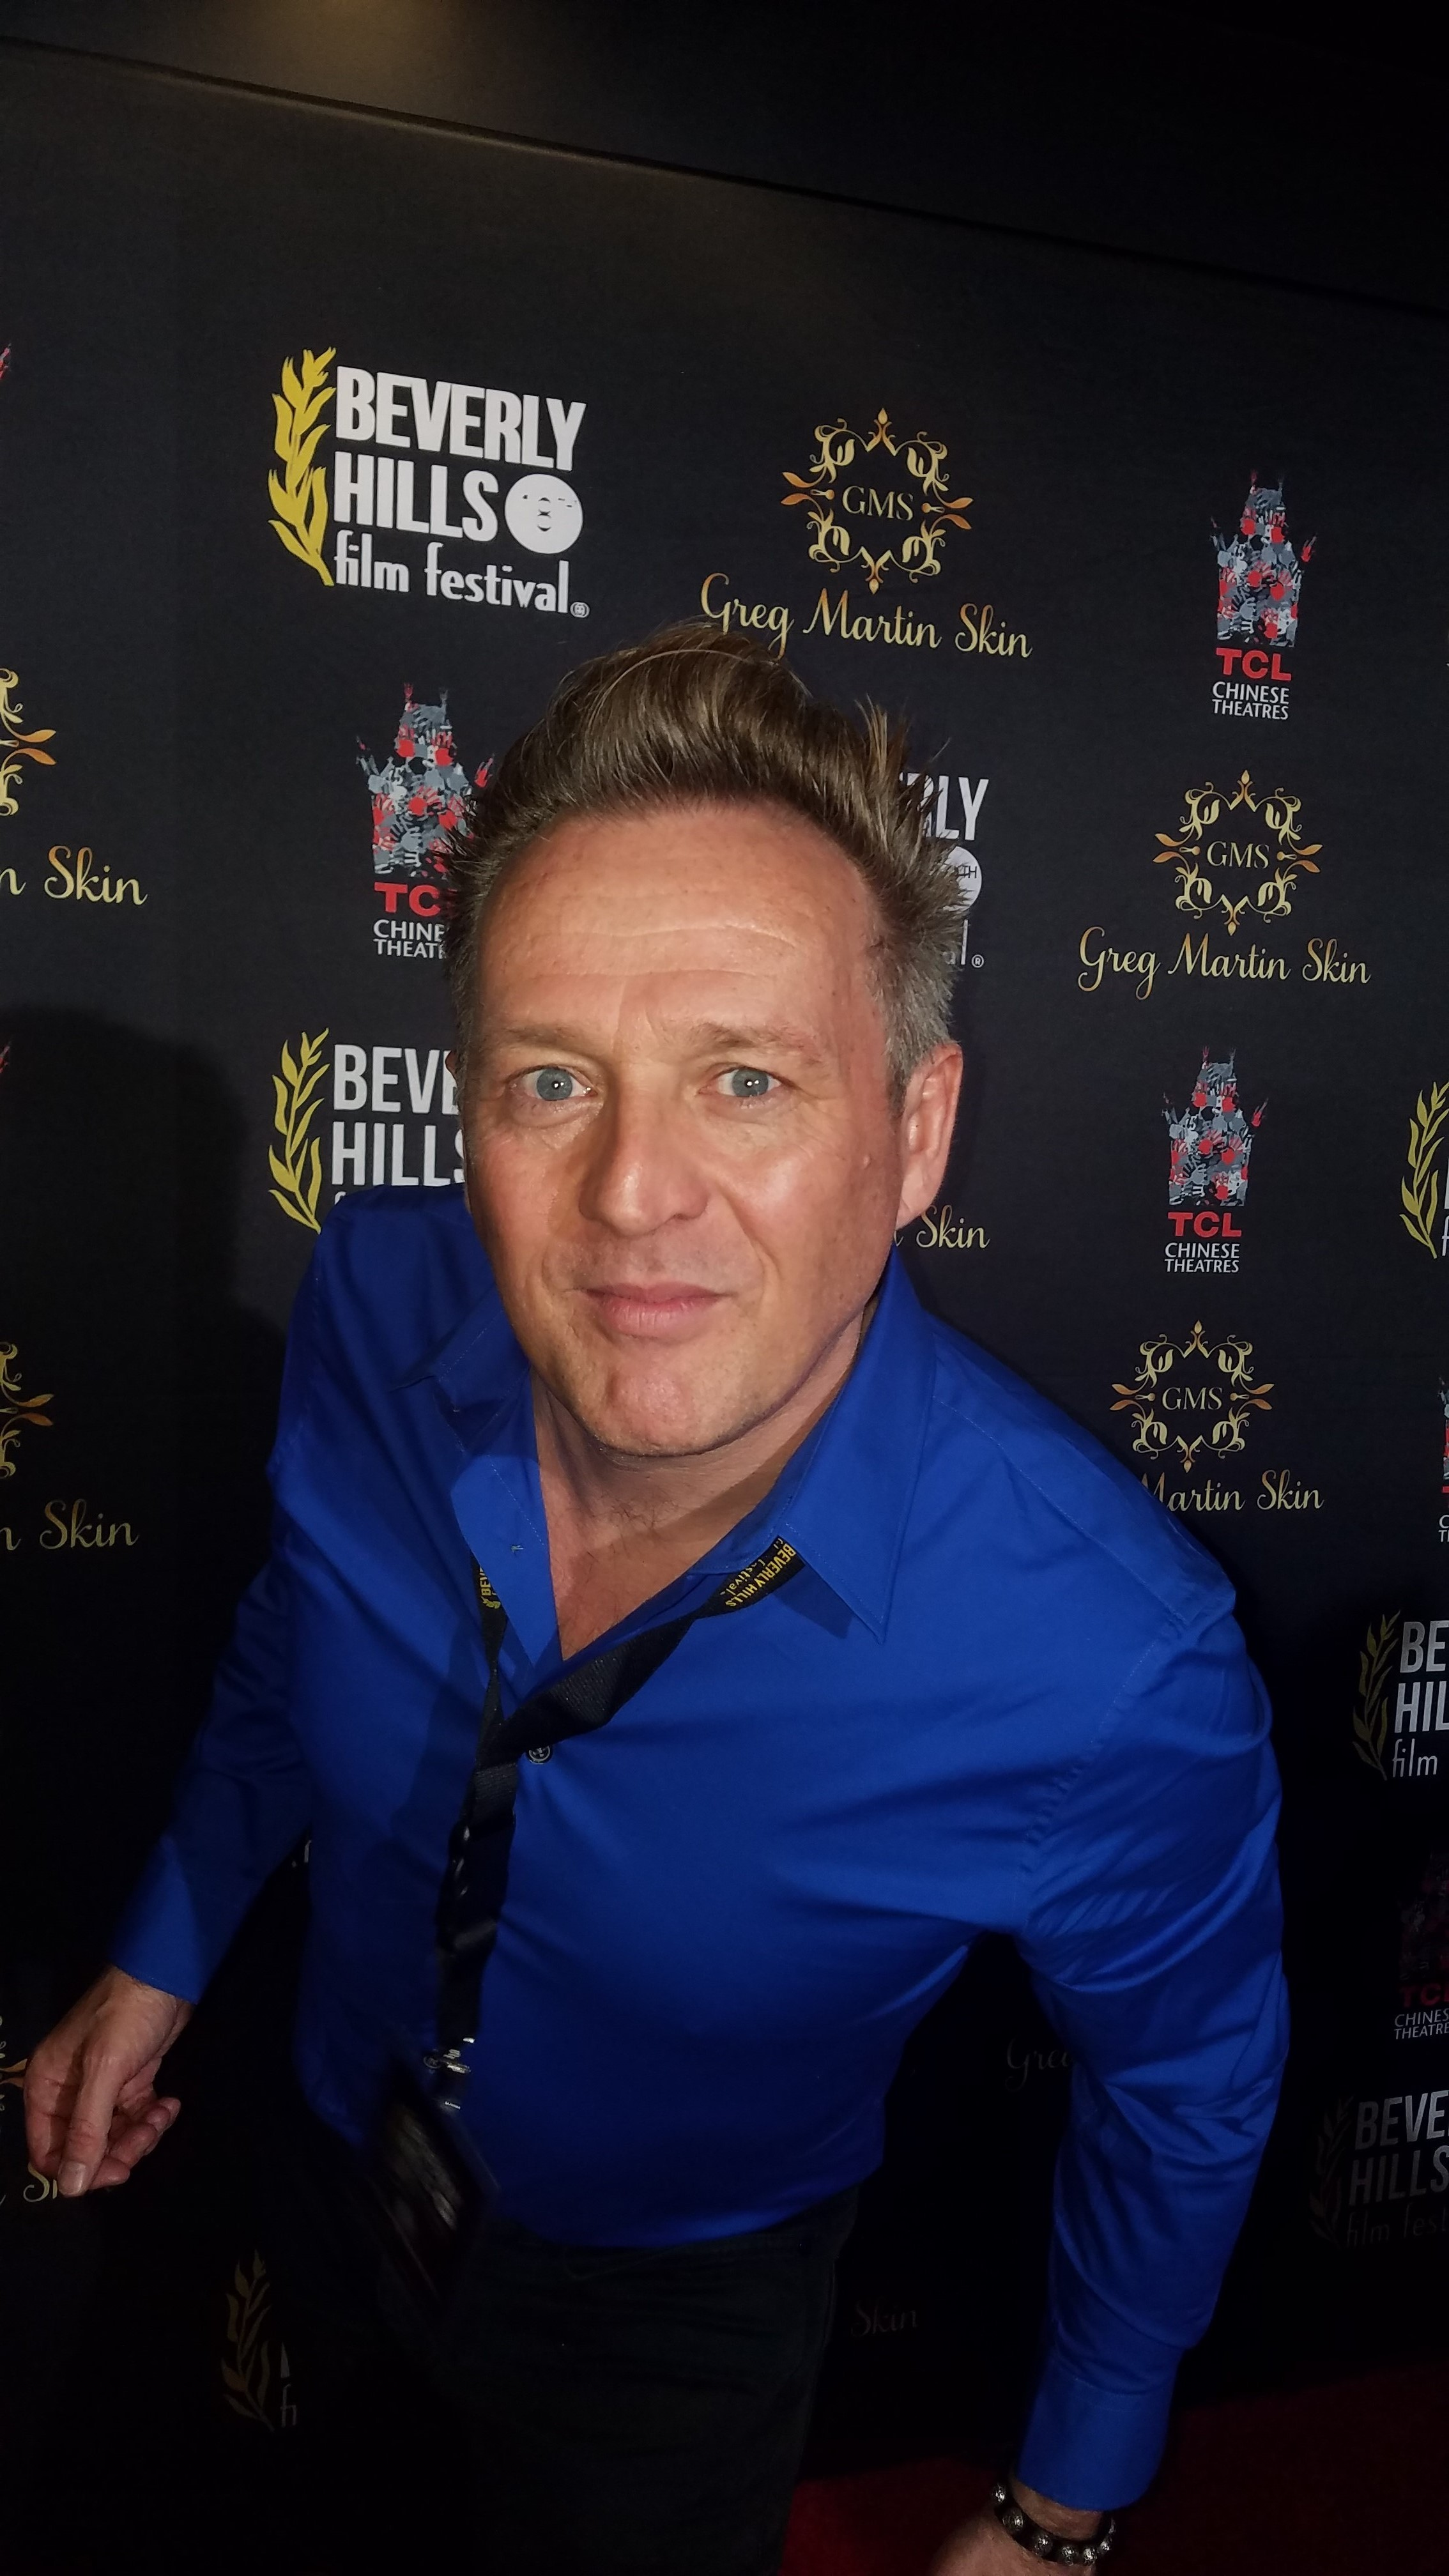 Joe Toppe at the Beverly Hills Film Festival.